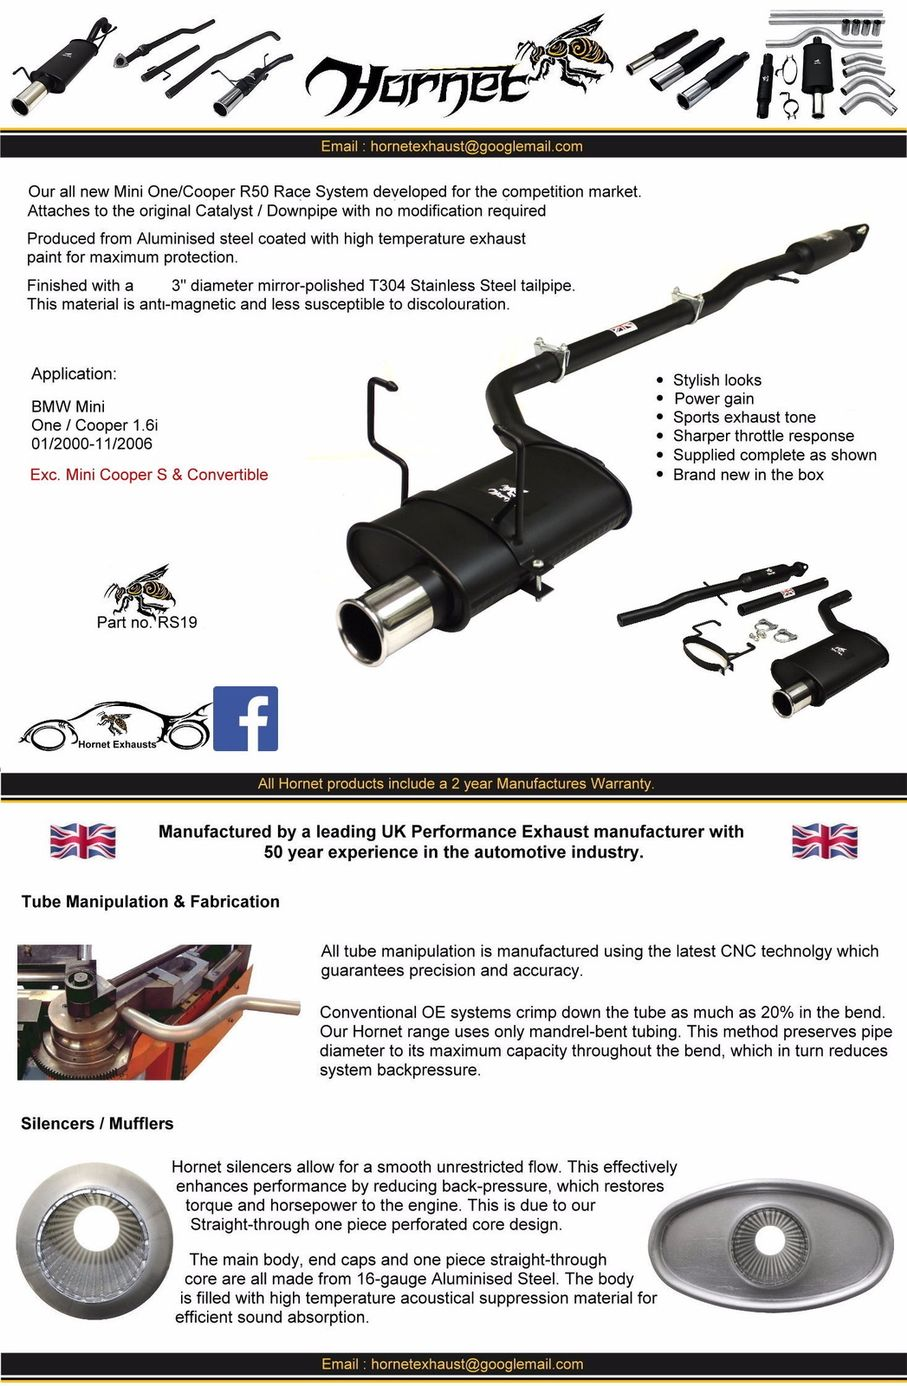 Details about BMW Mini Cooper / Mini One R50 (2000-2006) Hornet Exhaust -  Full Race System